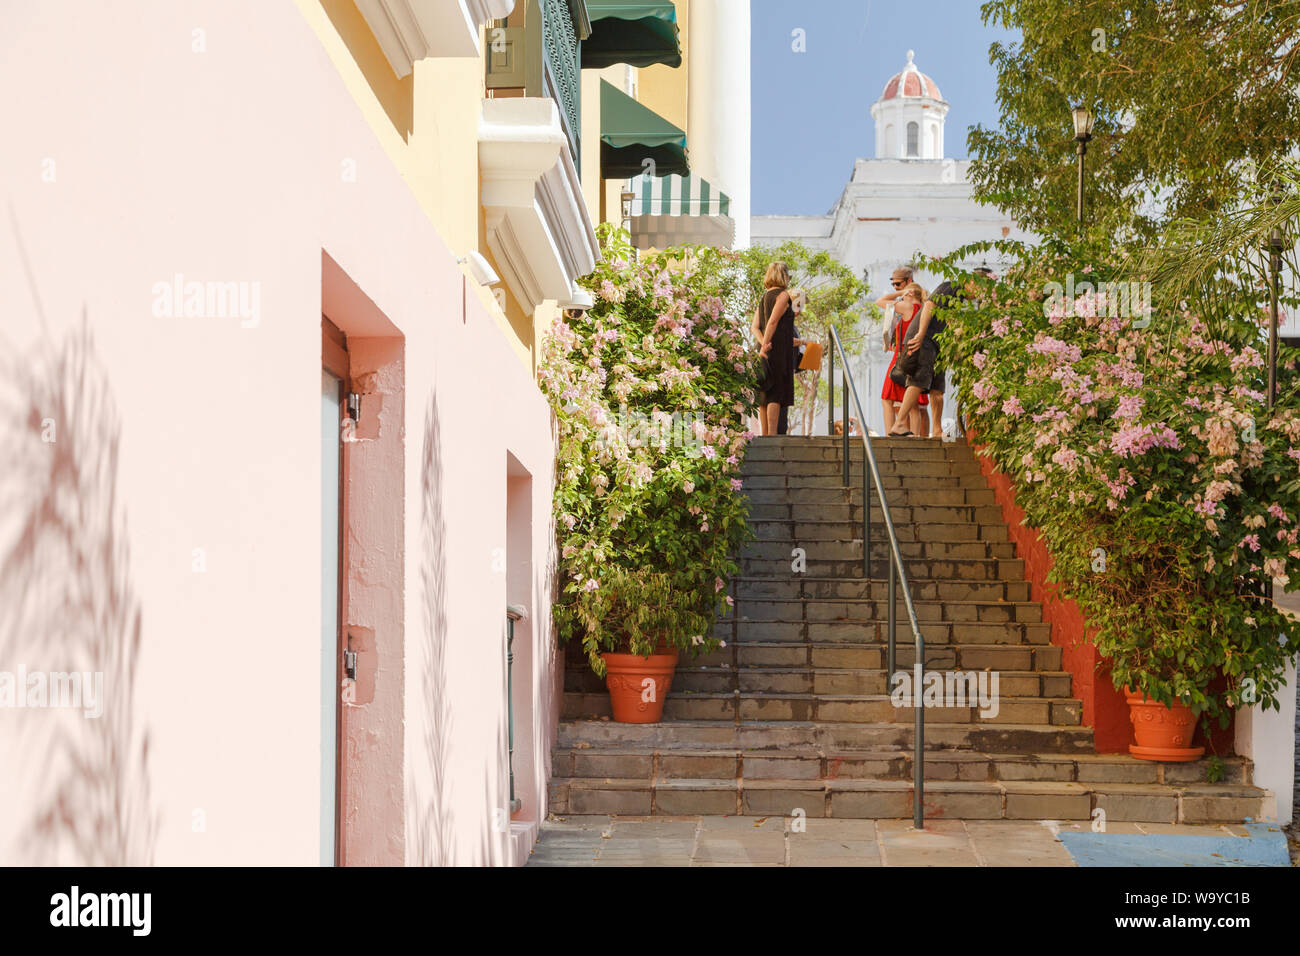 People chat on top of the flower filled stairs at Plaza de la Catedral located in front of San Juan Bautista Cathedral in Old San Juan, San Juan, PR. Stock Photo